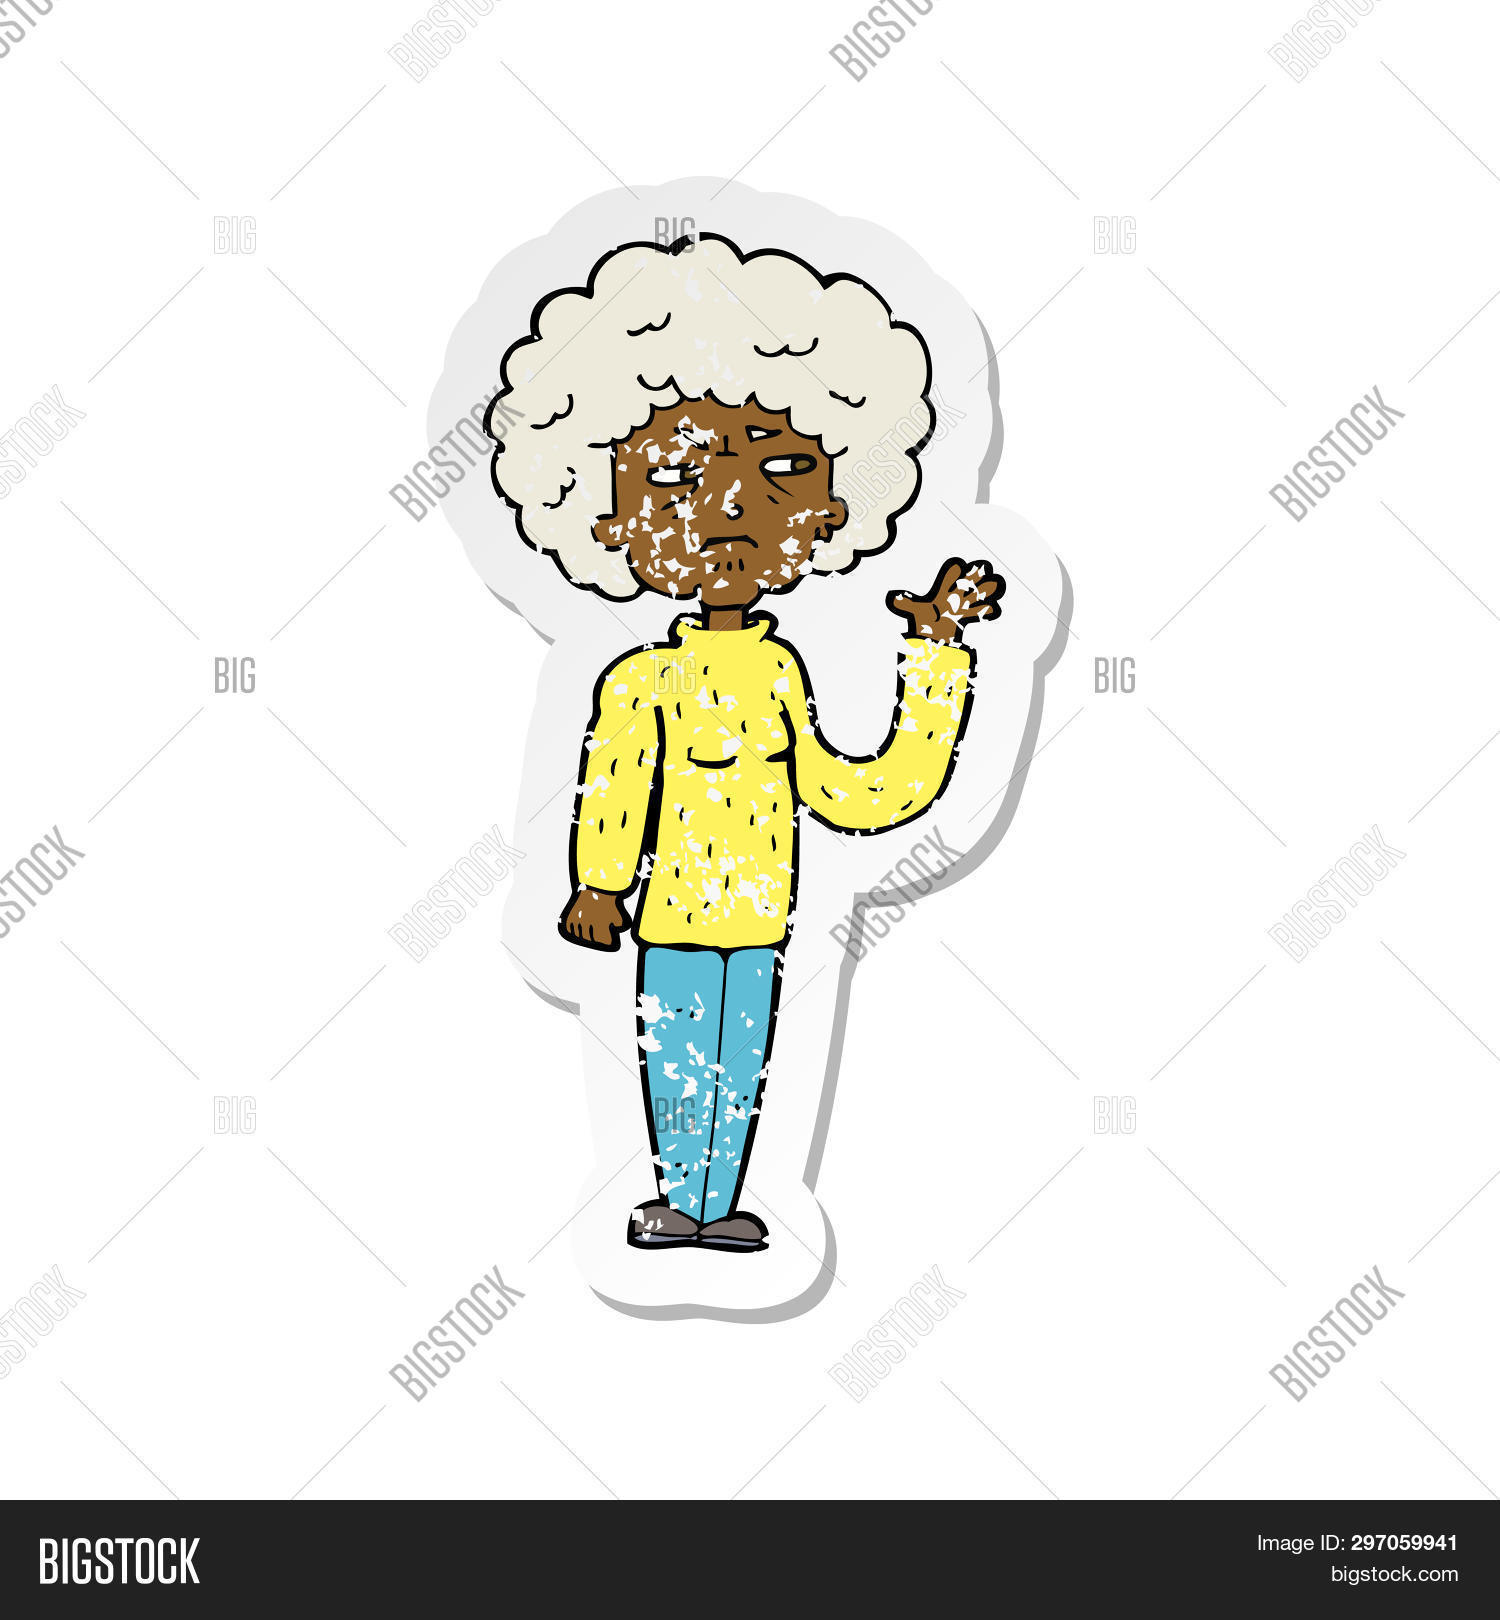 retro distressed sticker of a cartoon annoyed old woman waving